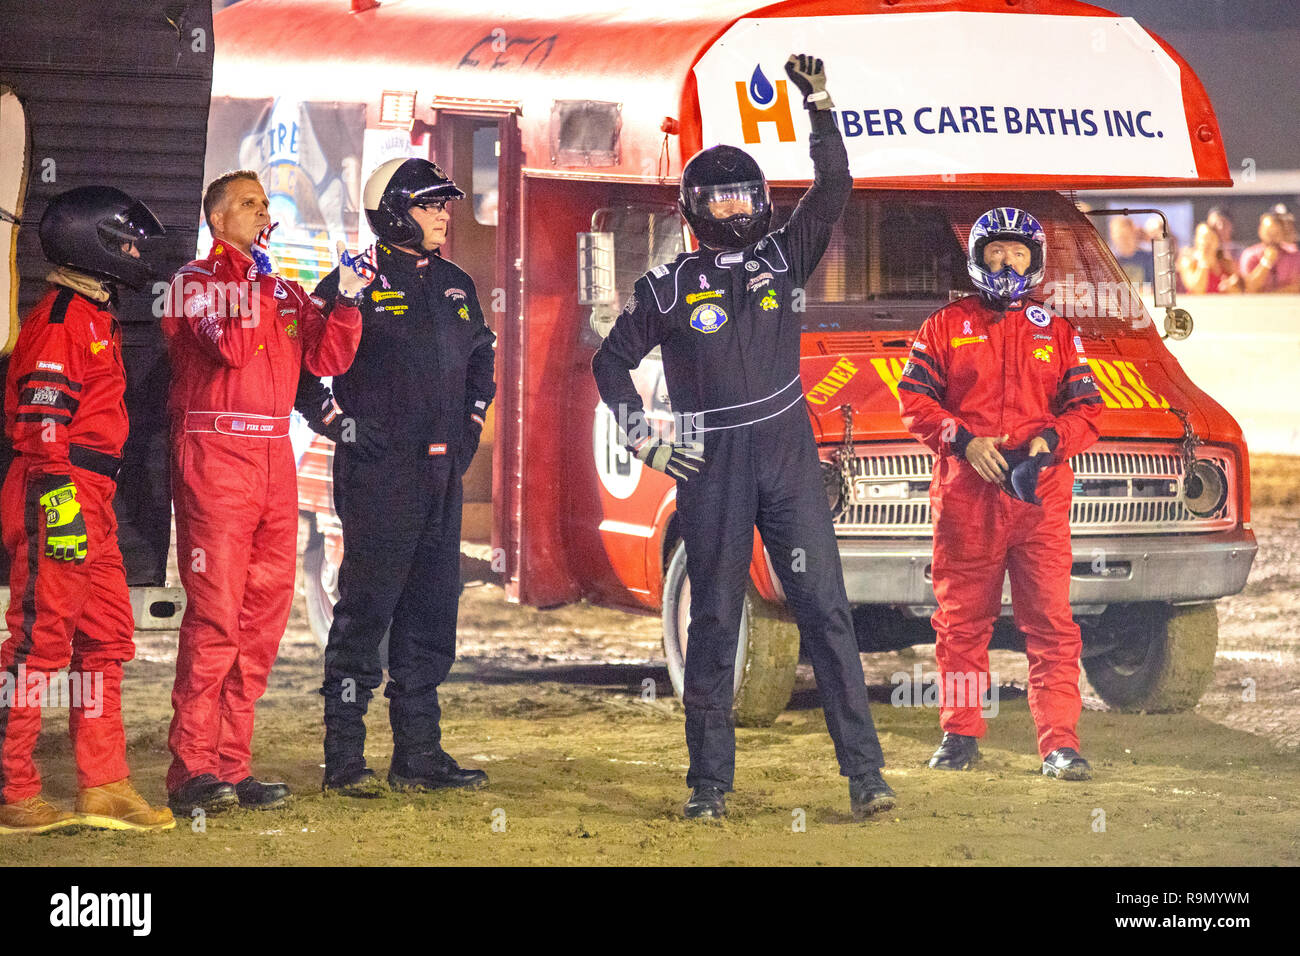 A uniformed police officer waves to the audience as he joins colleagues in safety coveralls in a police-only motor home demo derby in a Costa Mesa, CA, stadium. - Stock Image